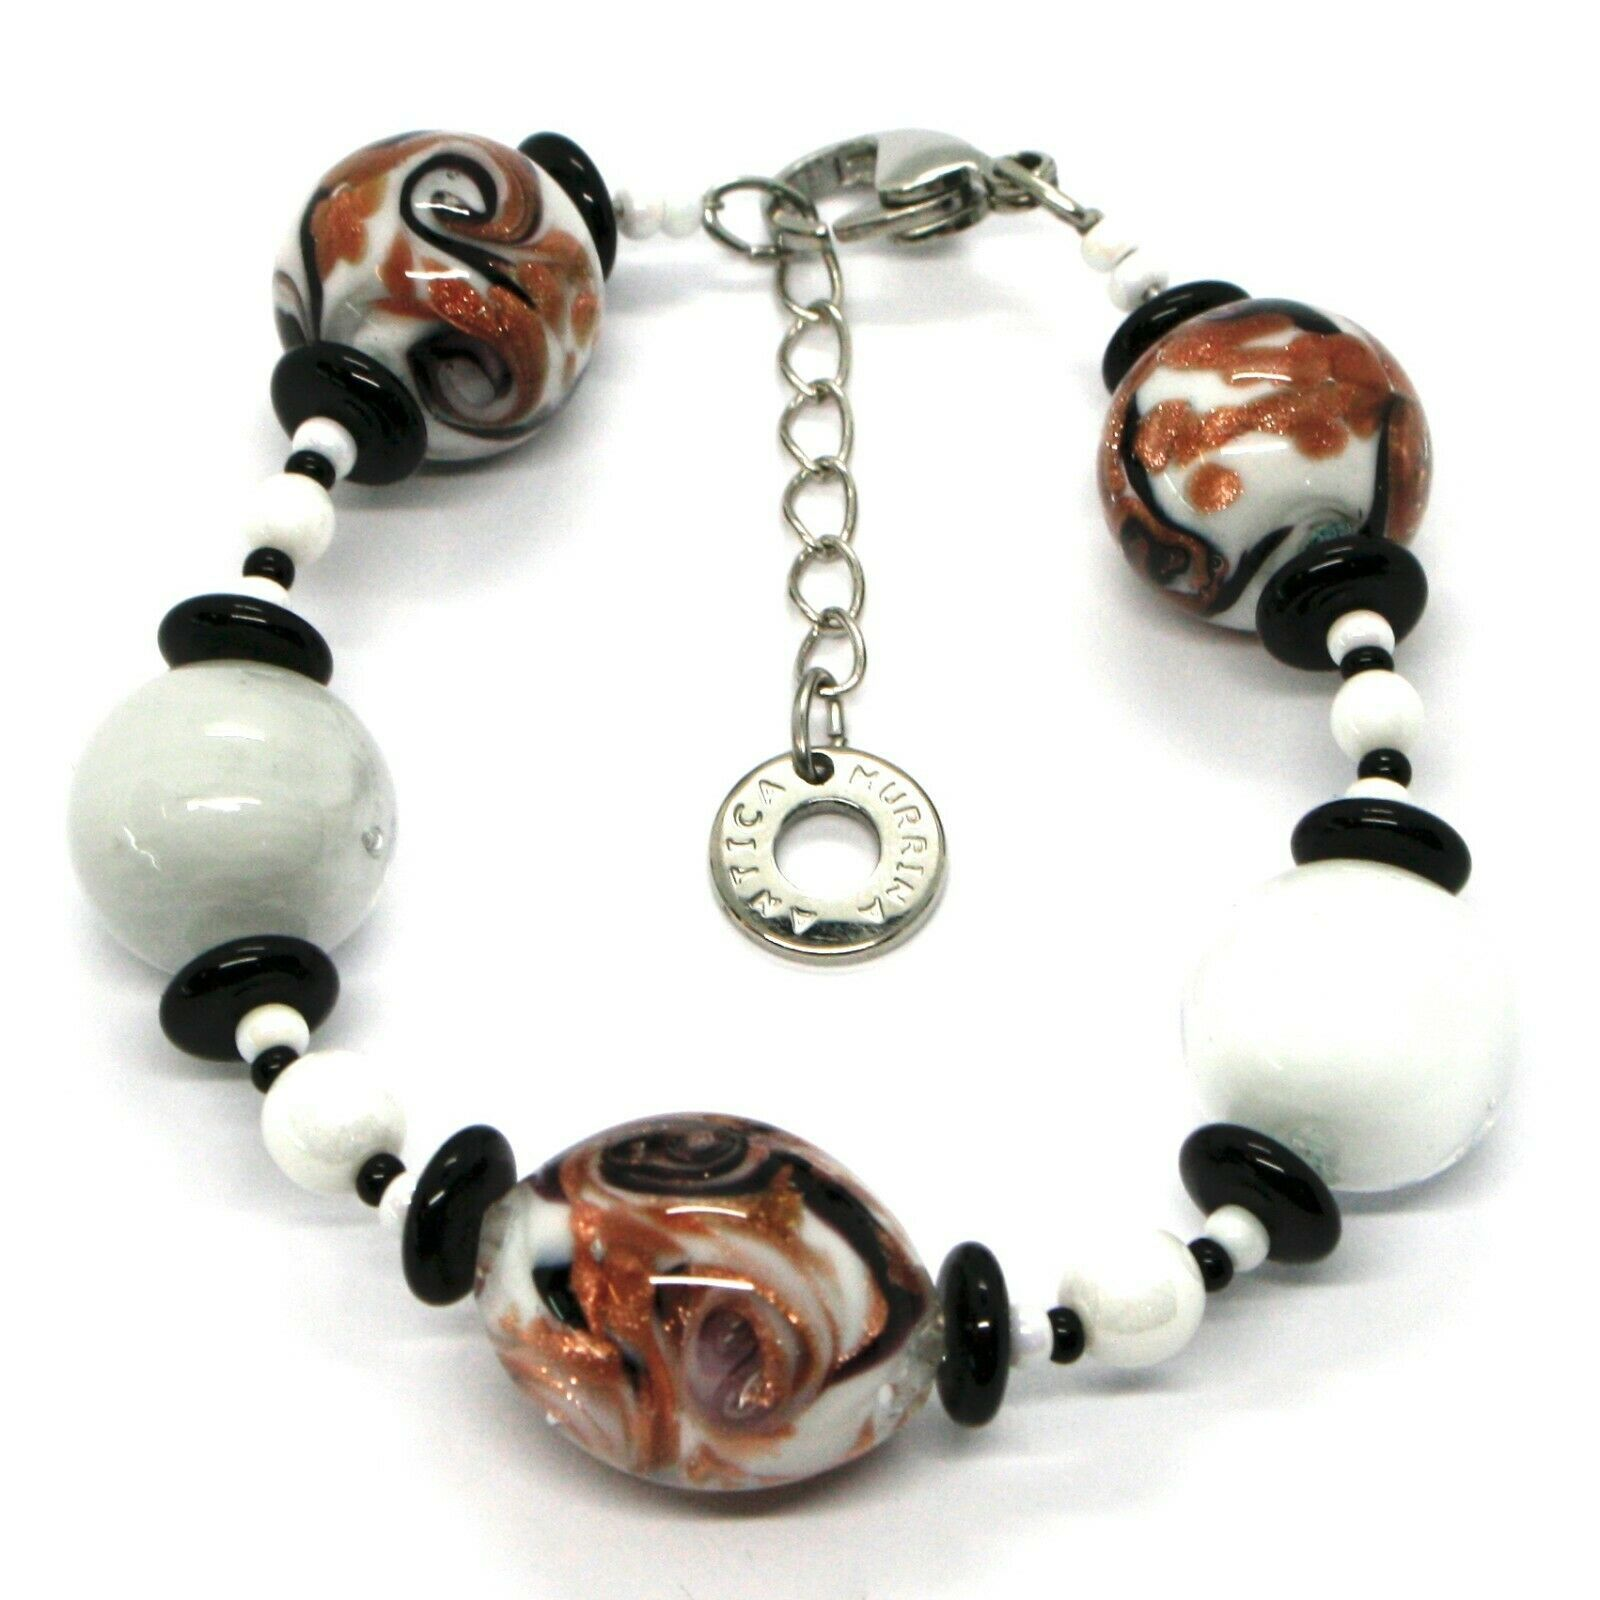 BRACELET ANTIQUE MURRINA VENICE BR801A15, TESE, MURANO GLASS, SPHERES WHITE